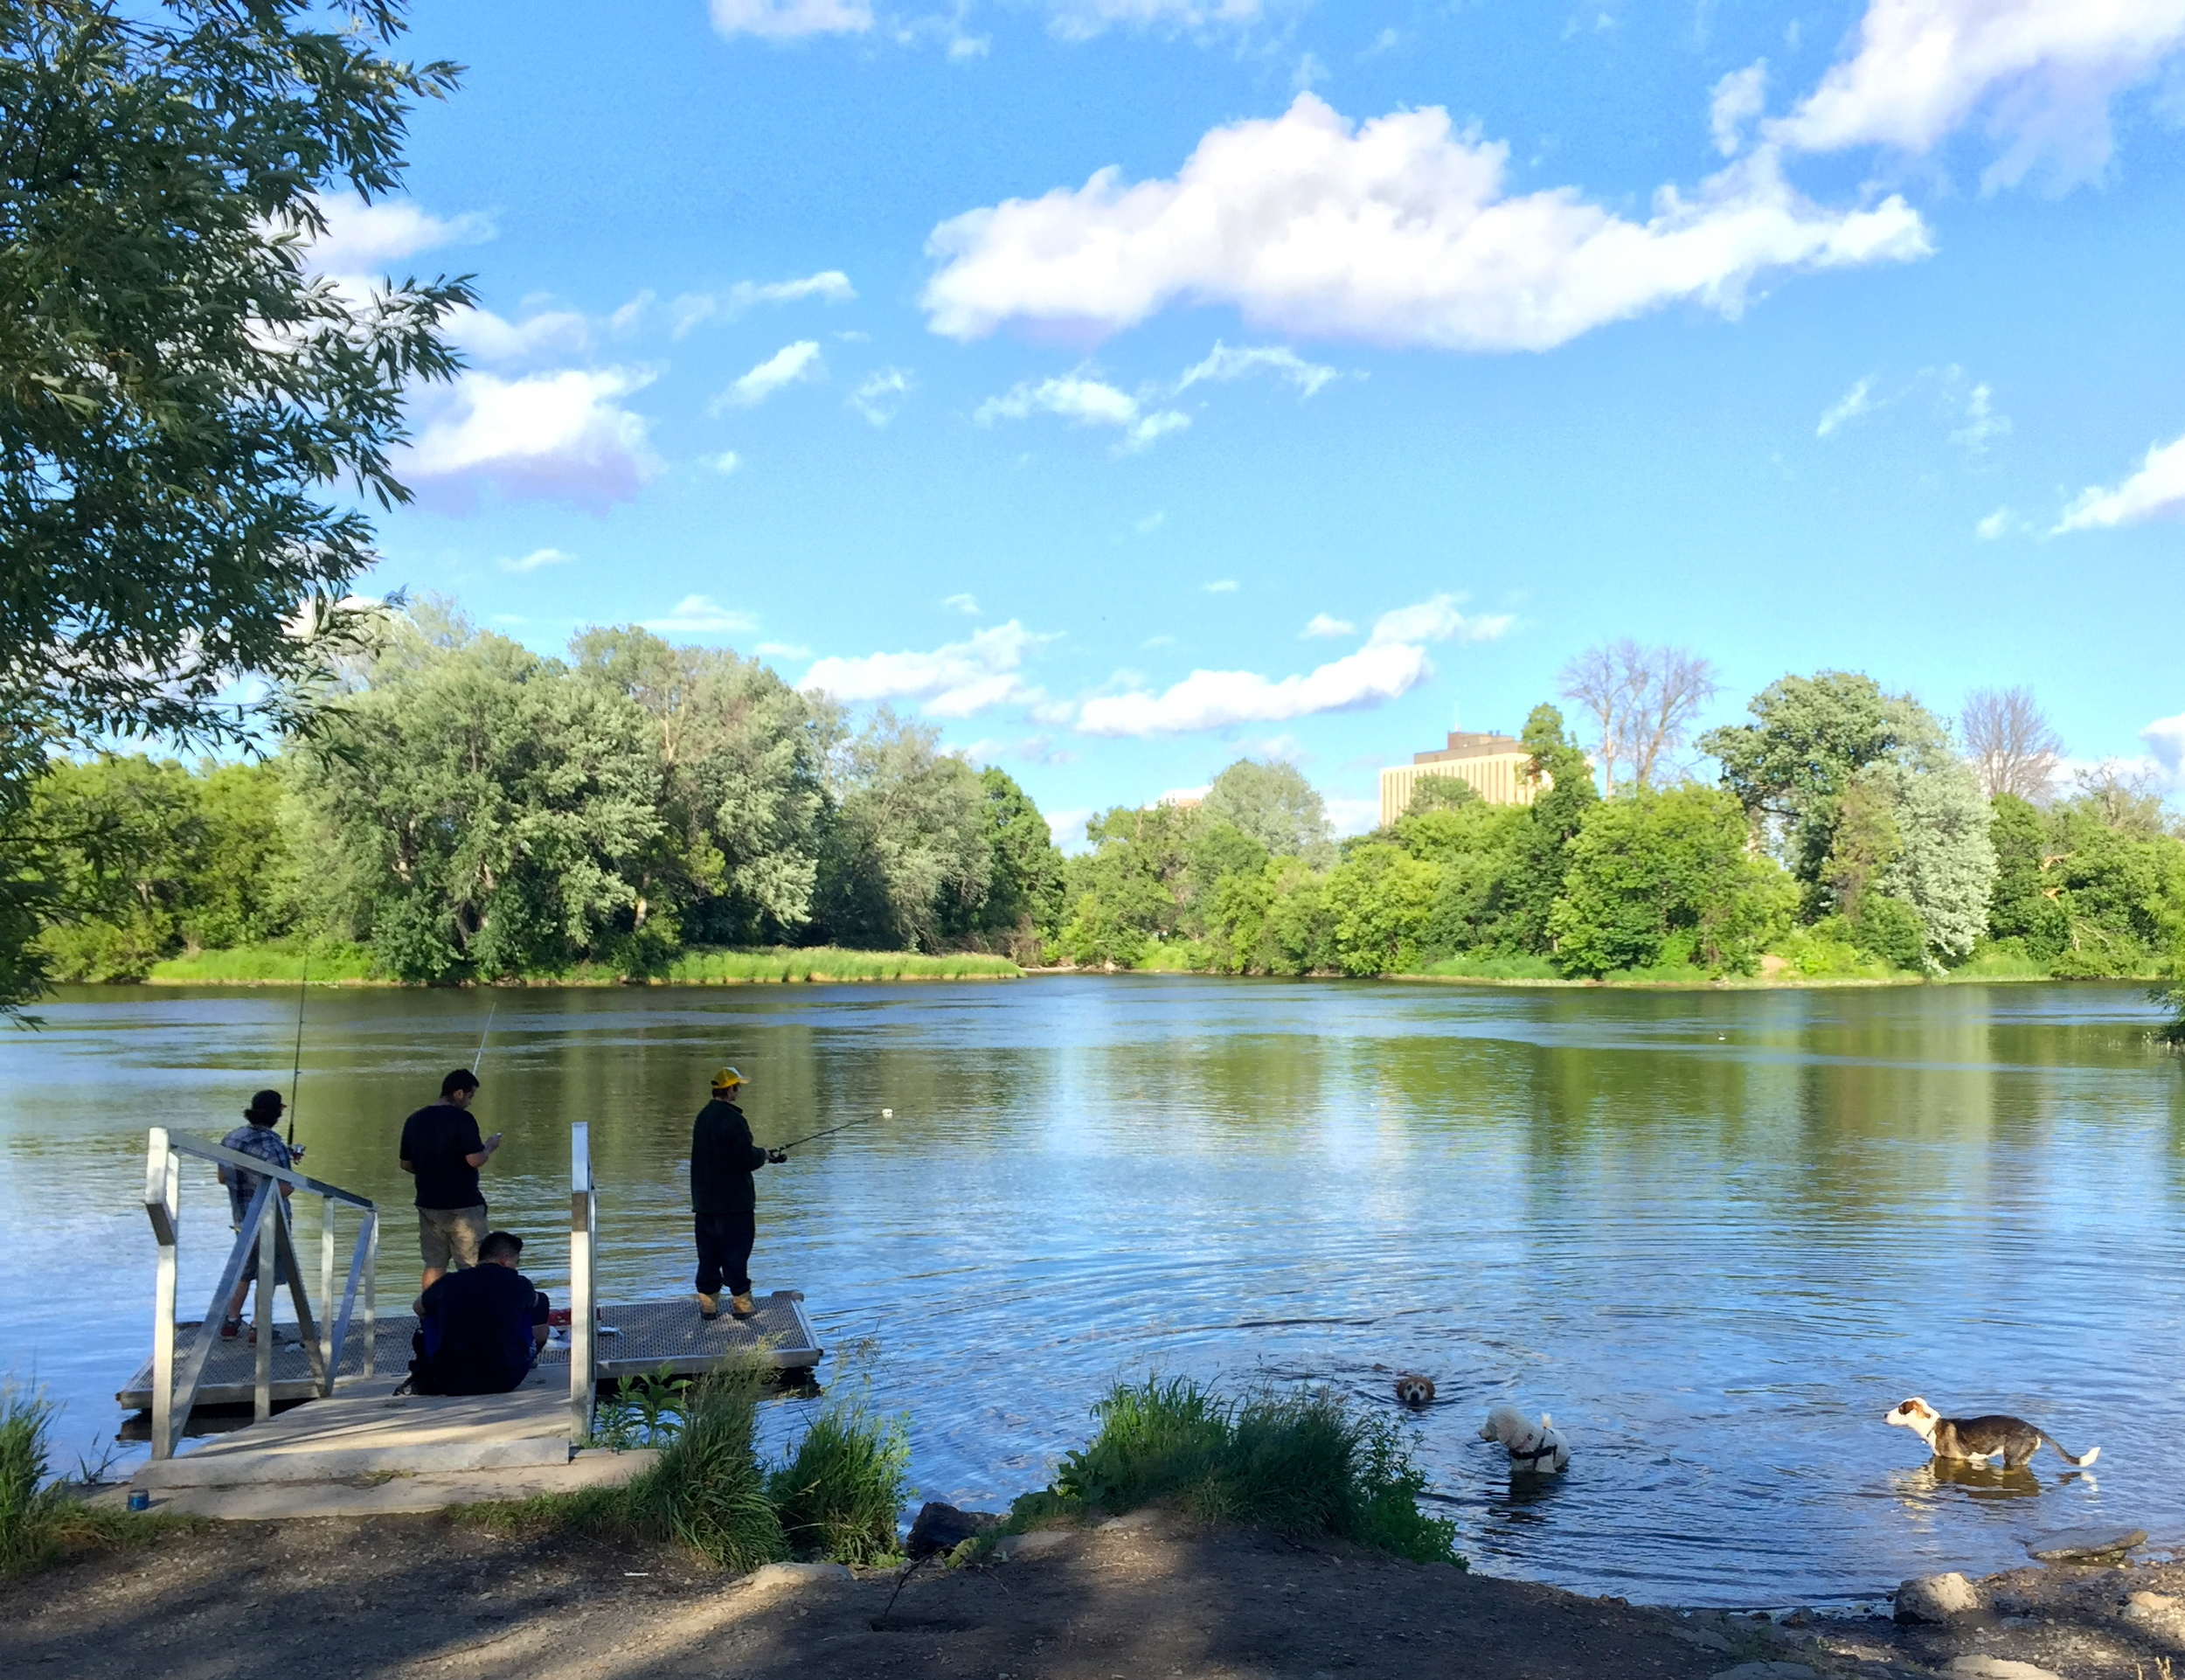 Fishing in the Rideau River at Brewer Park.